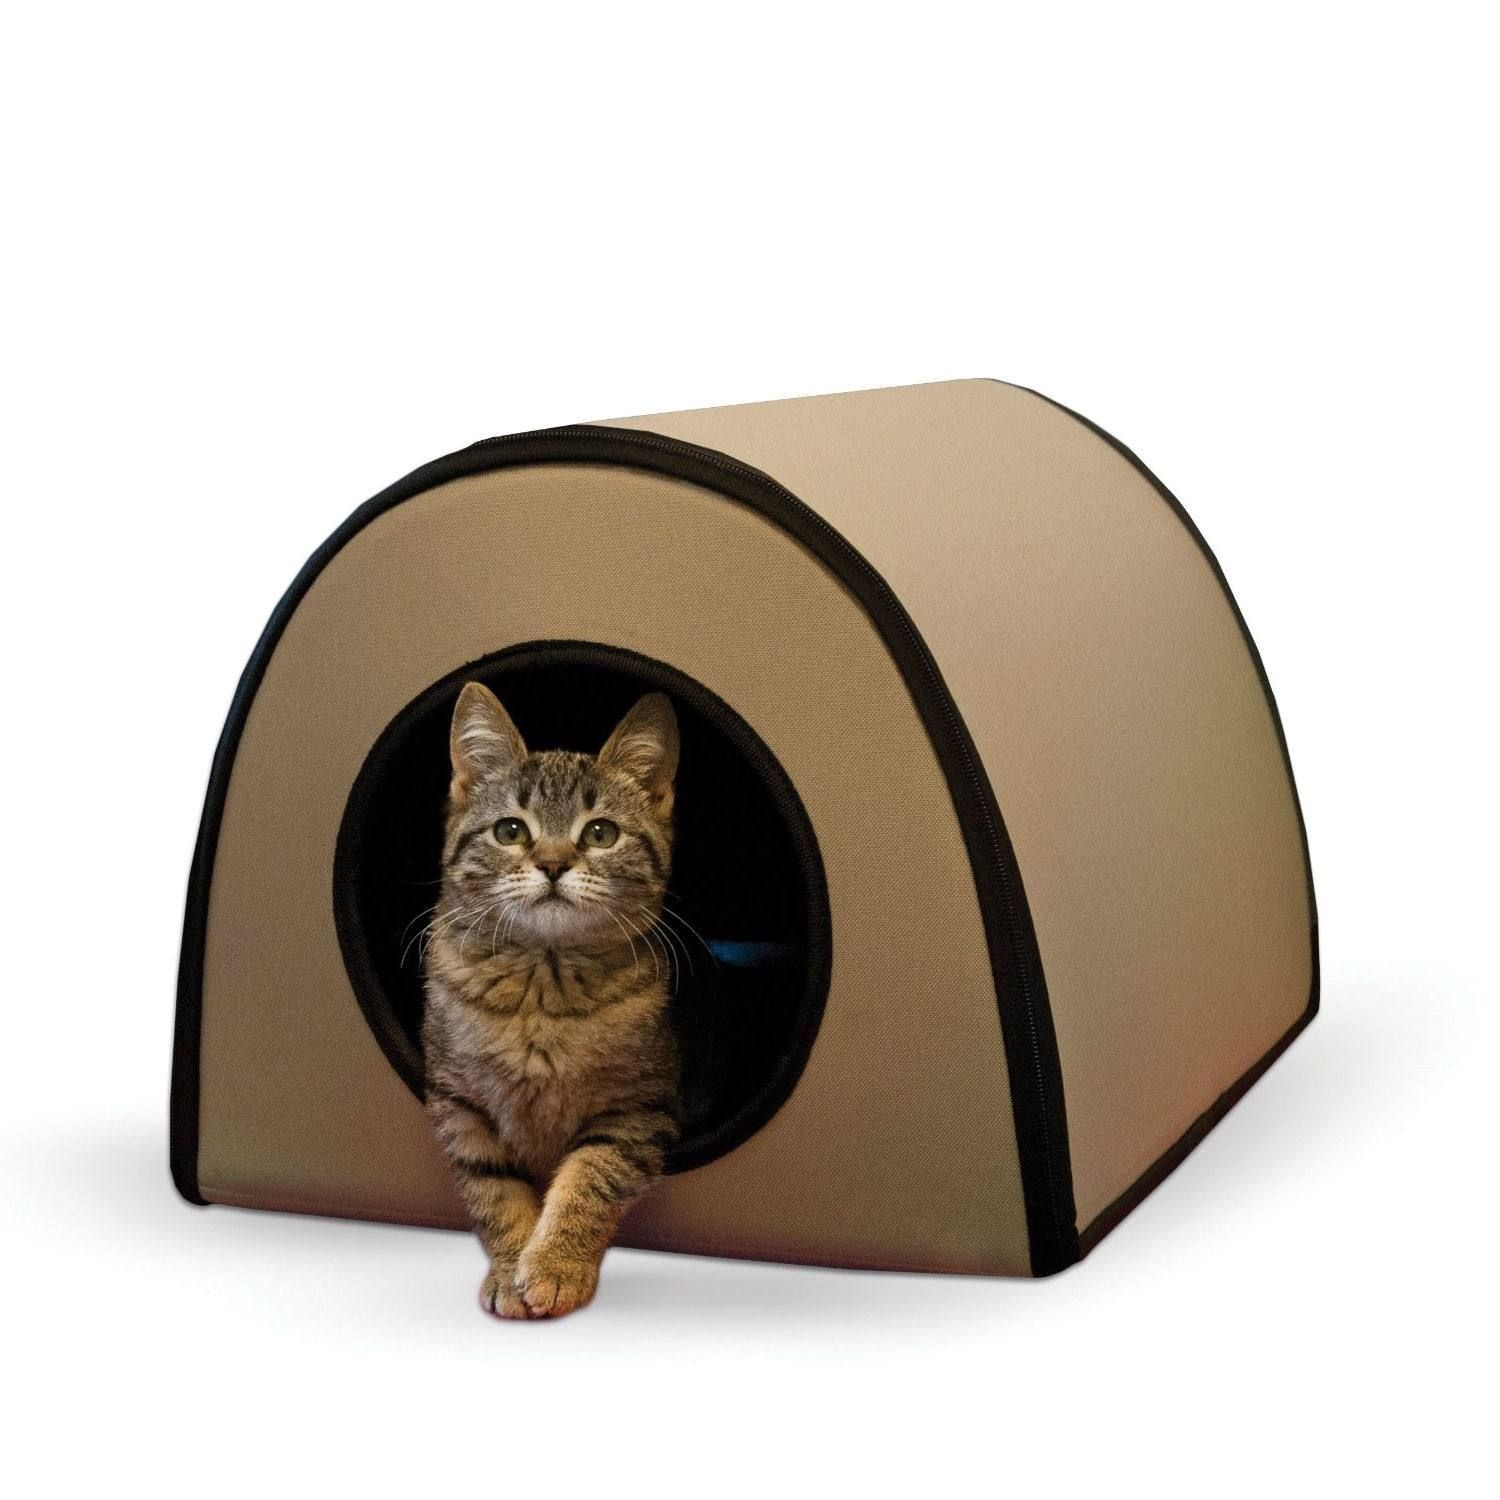 Simple Heated Safe Energy Efficient This Modern Heated Outdoor Cat House Shelter In Tan Is A Si Heated Cat House Heated Outdoor Cat House Outdoor Cat House